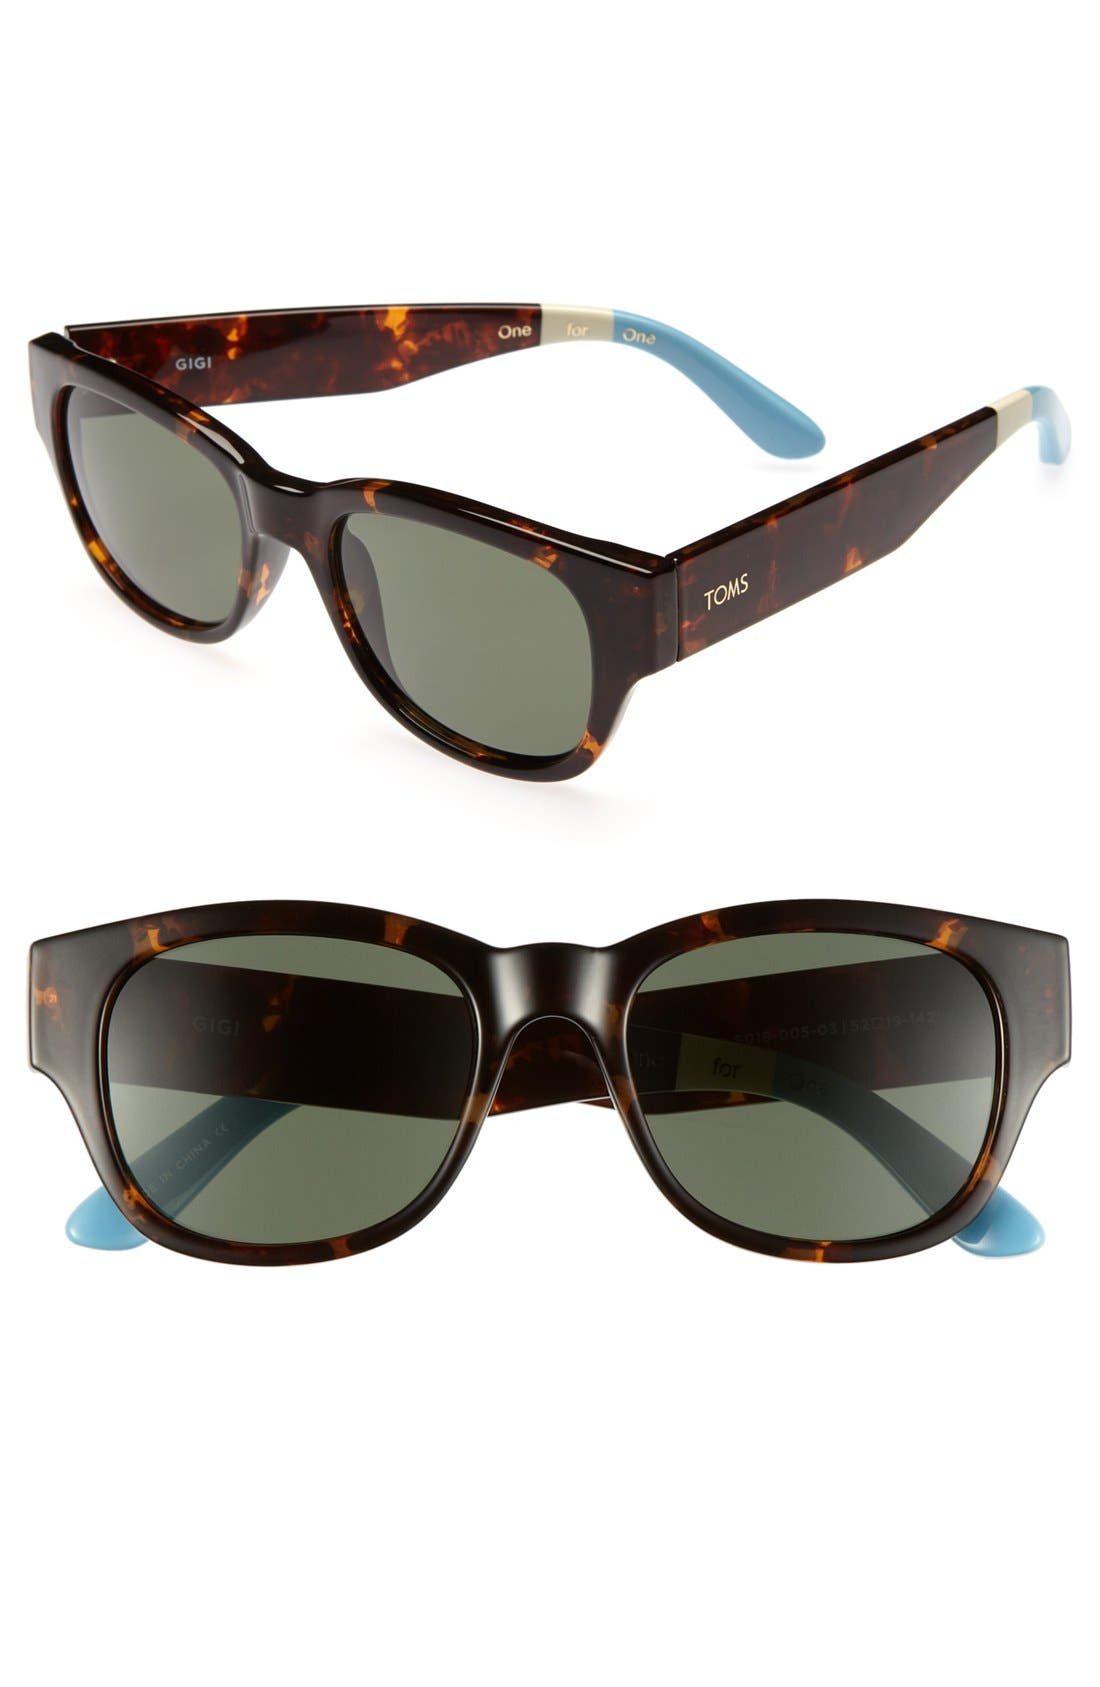 Main Image - TOMS 'Gigi' 52mm Sunglasses